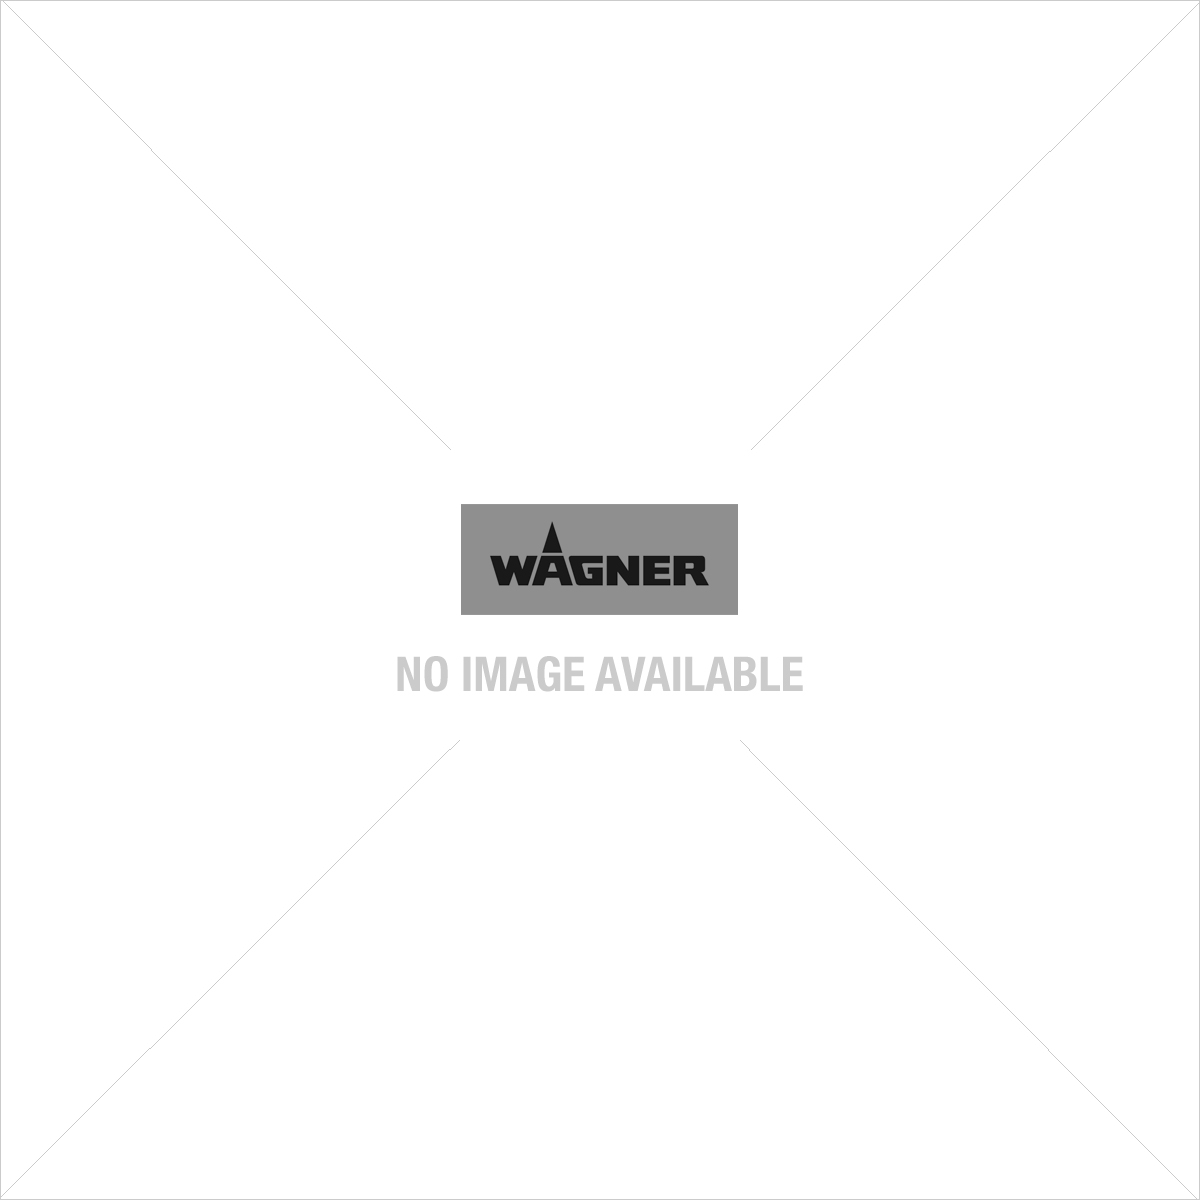 wagner project pro 119 airless paint sprayer. Black Bedroom Furniture Sets. Home Design Ideas